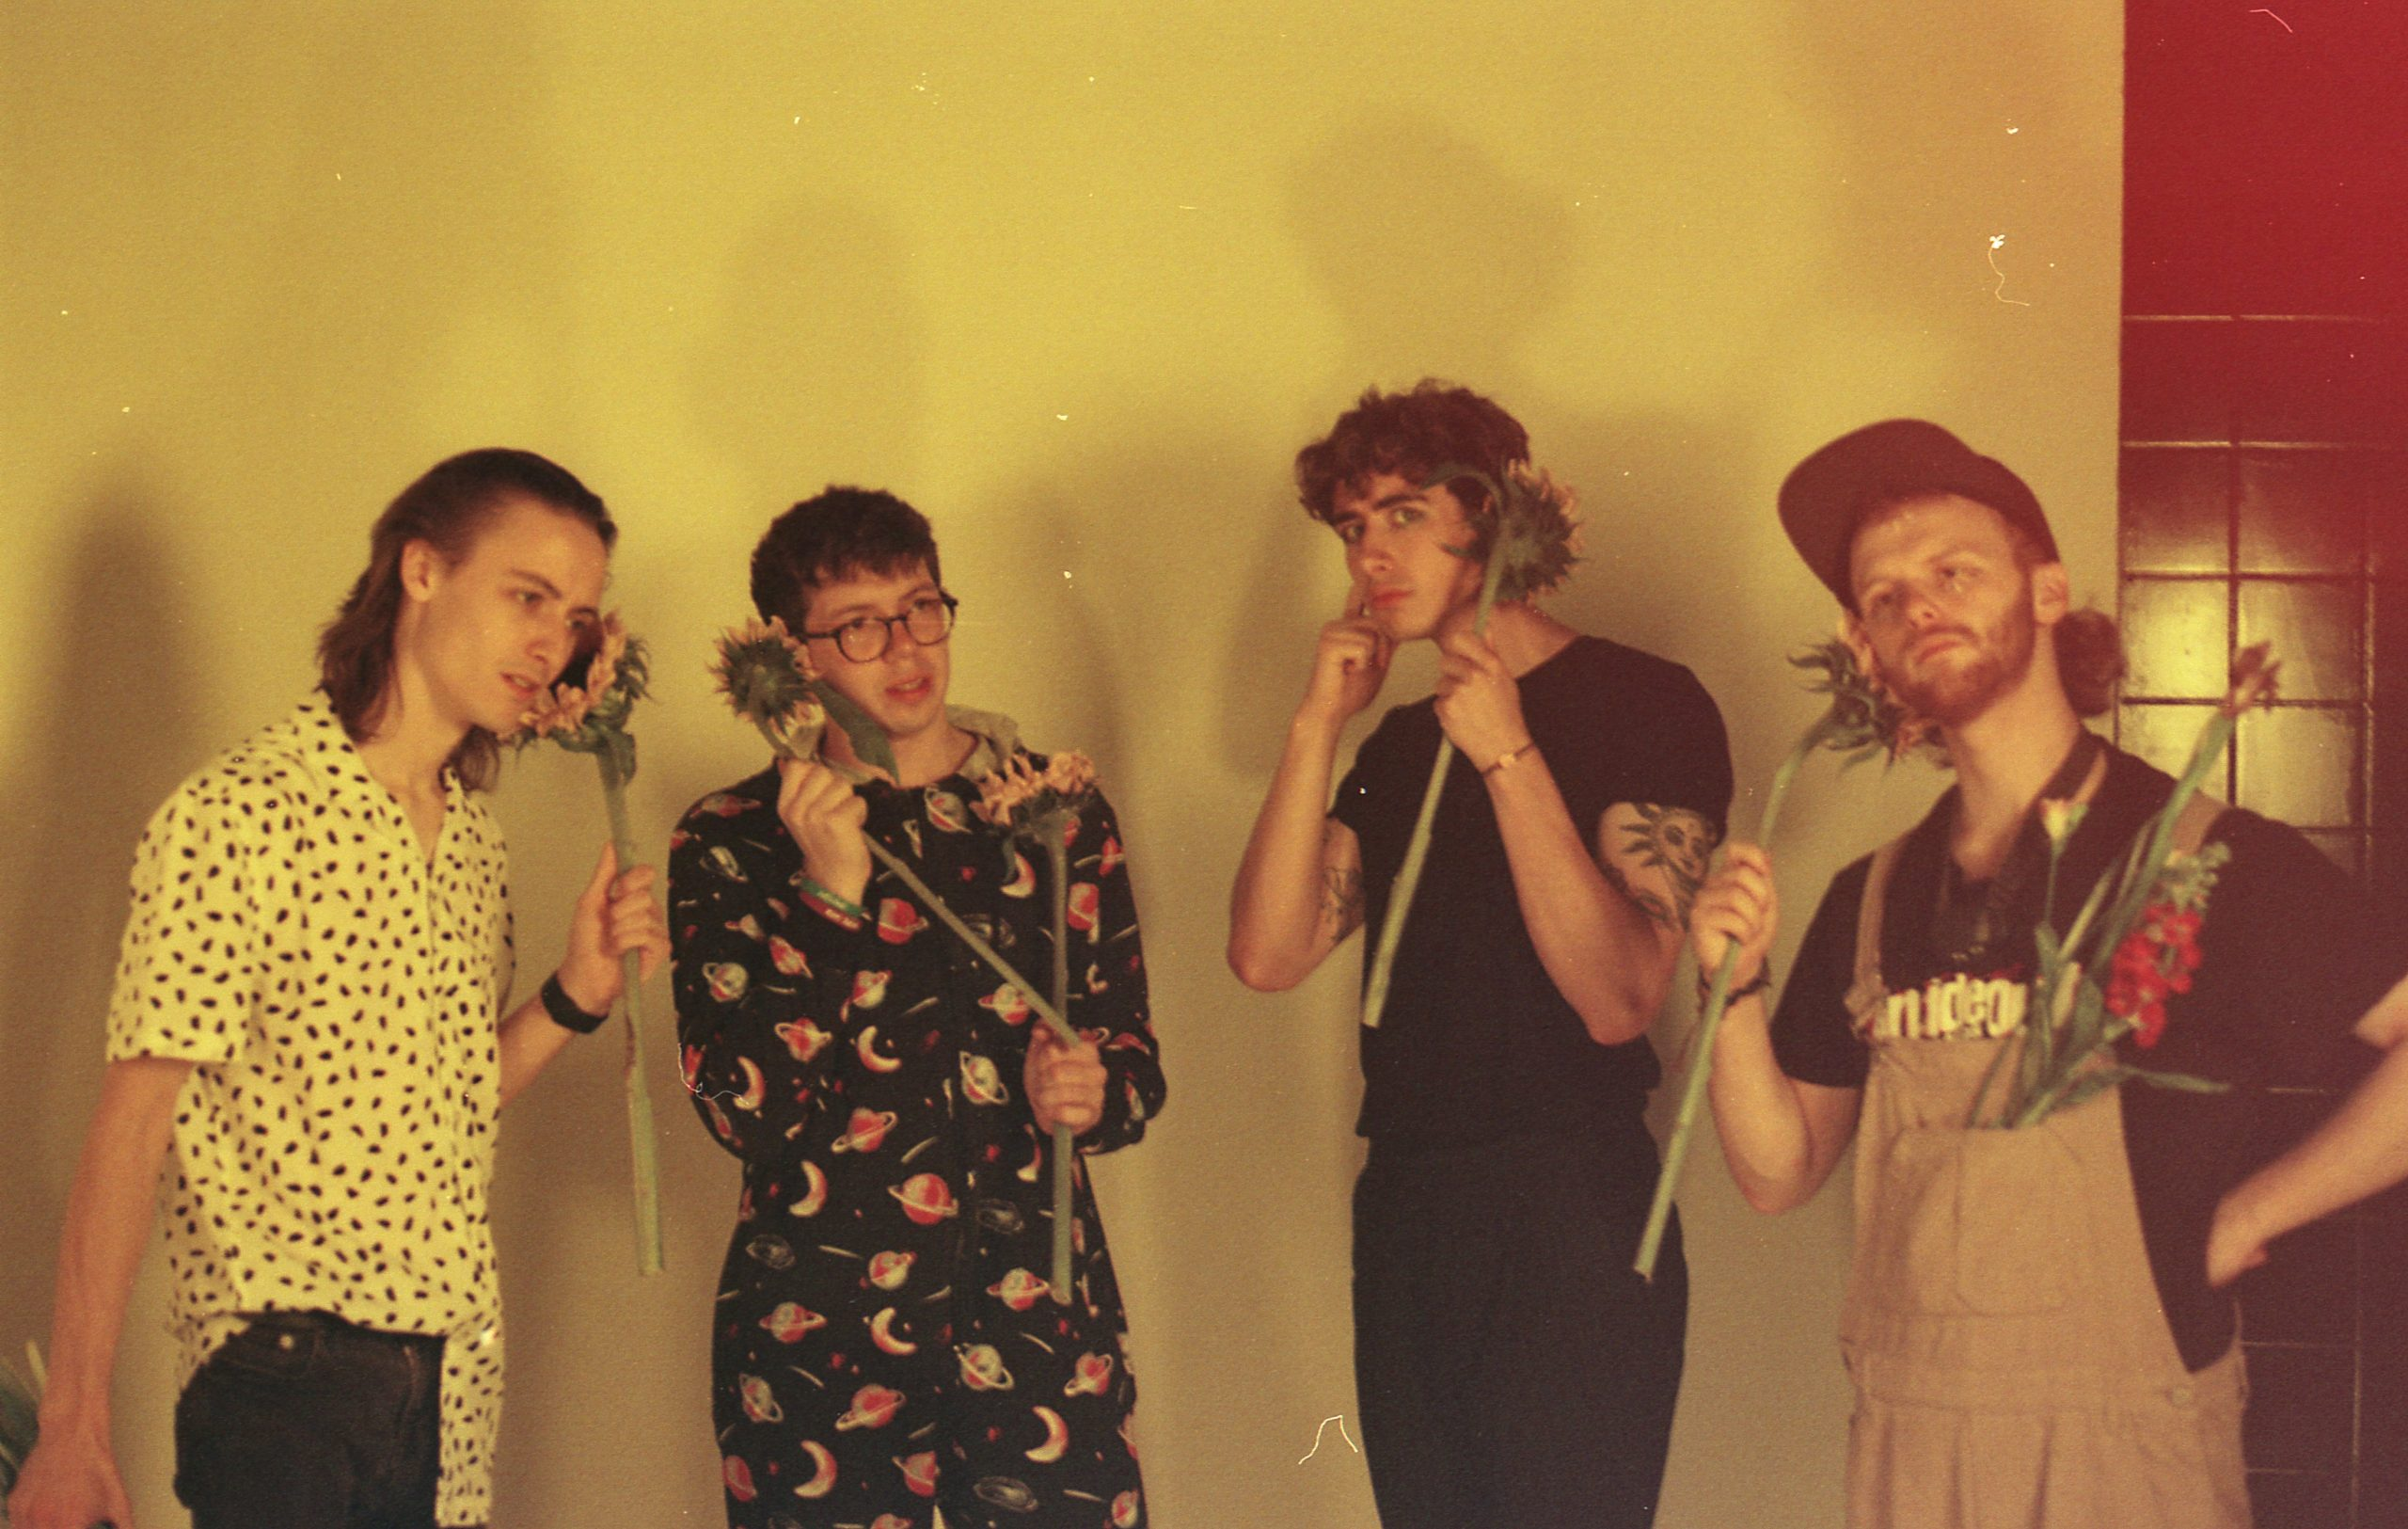 VIDEO NEWS: Bears In Trees Release Video For New Single 'I'm Doing Push Ups'